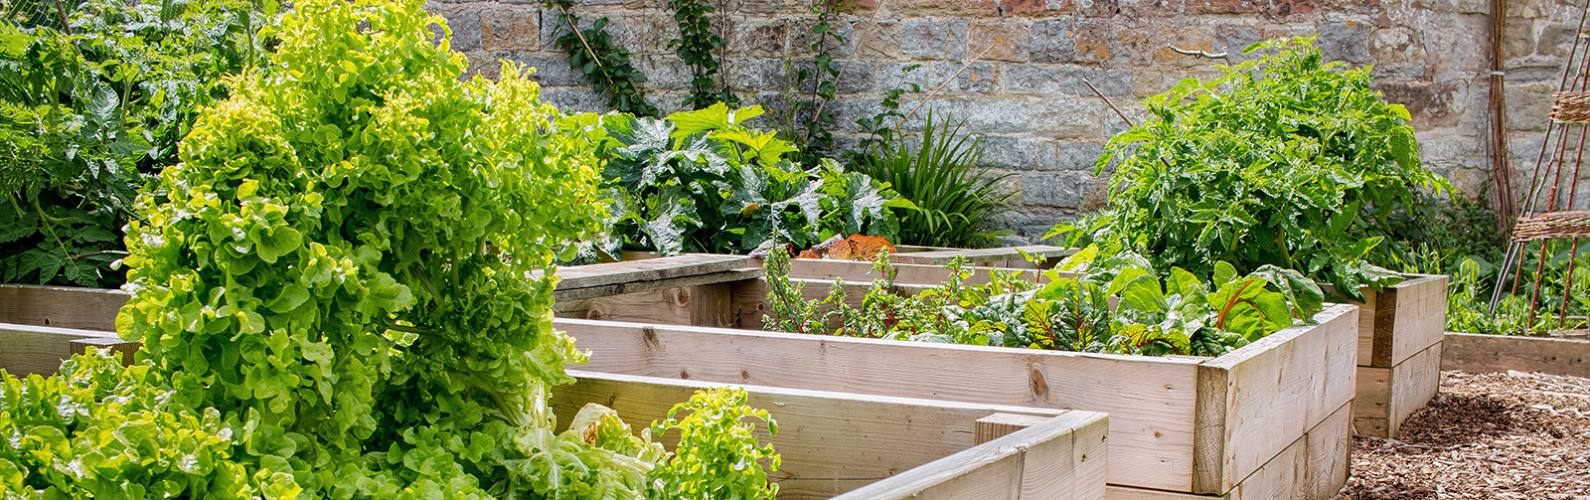 Cheap Diy Raised Beds For Growing Your Own